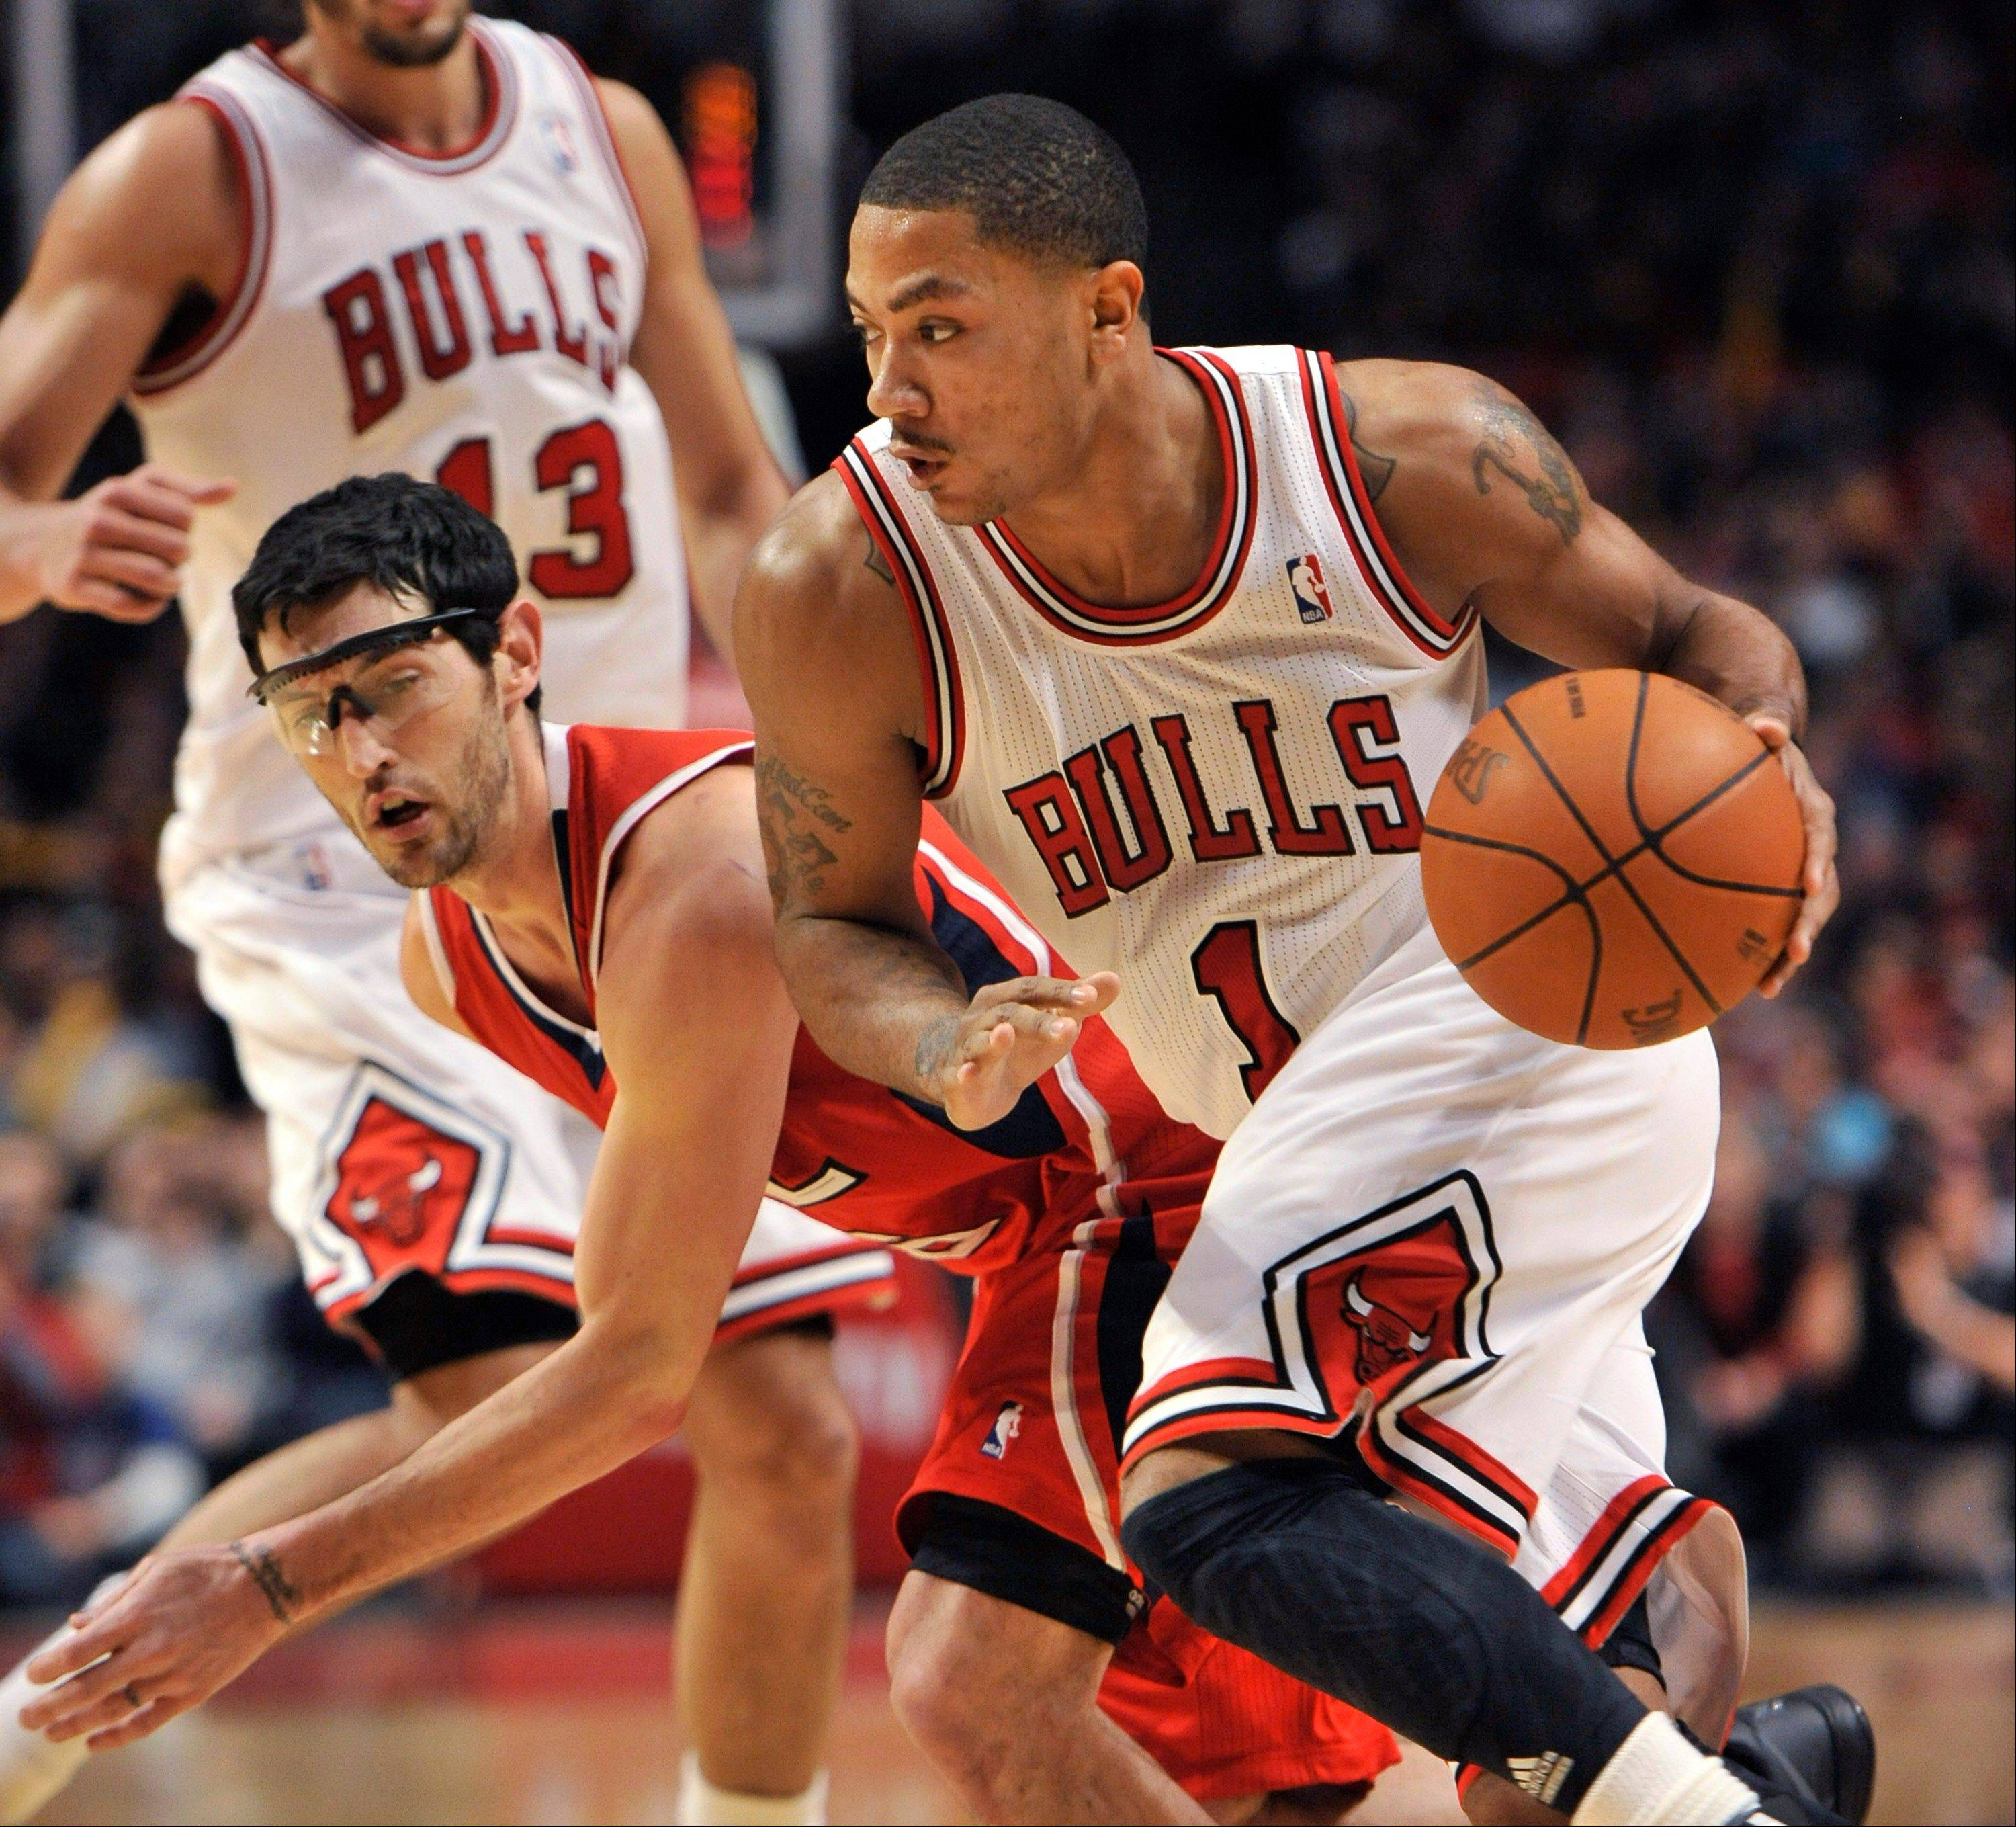 Bulls guard Derrick Rose, right, drives past Atlanta guard Kirk Hinrich during the fourth quarter of a game Feb. 20 in Chicago. Hinrich could be on his way back to Chicago.